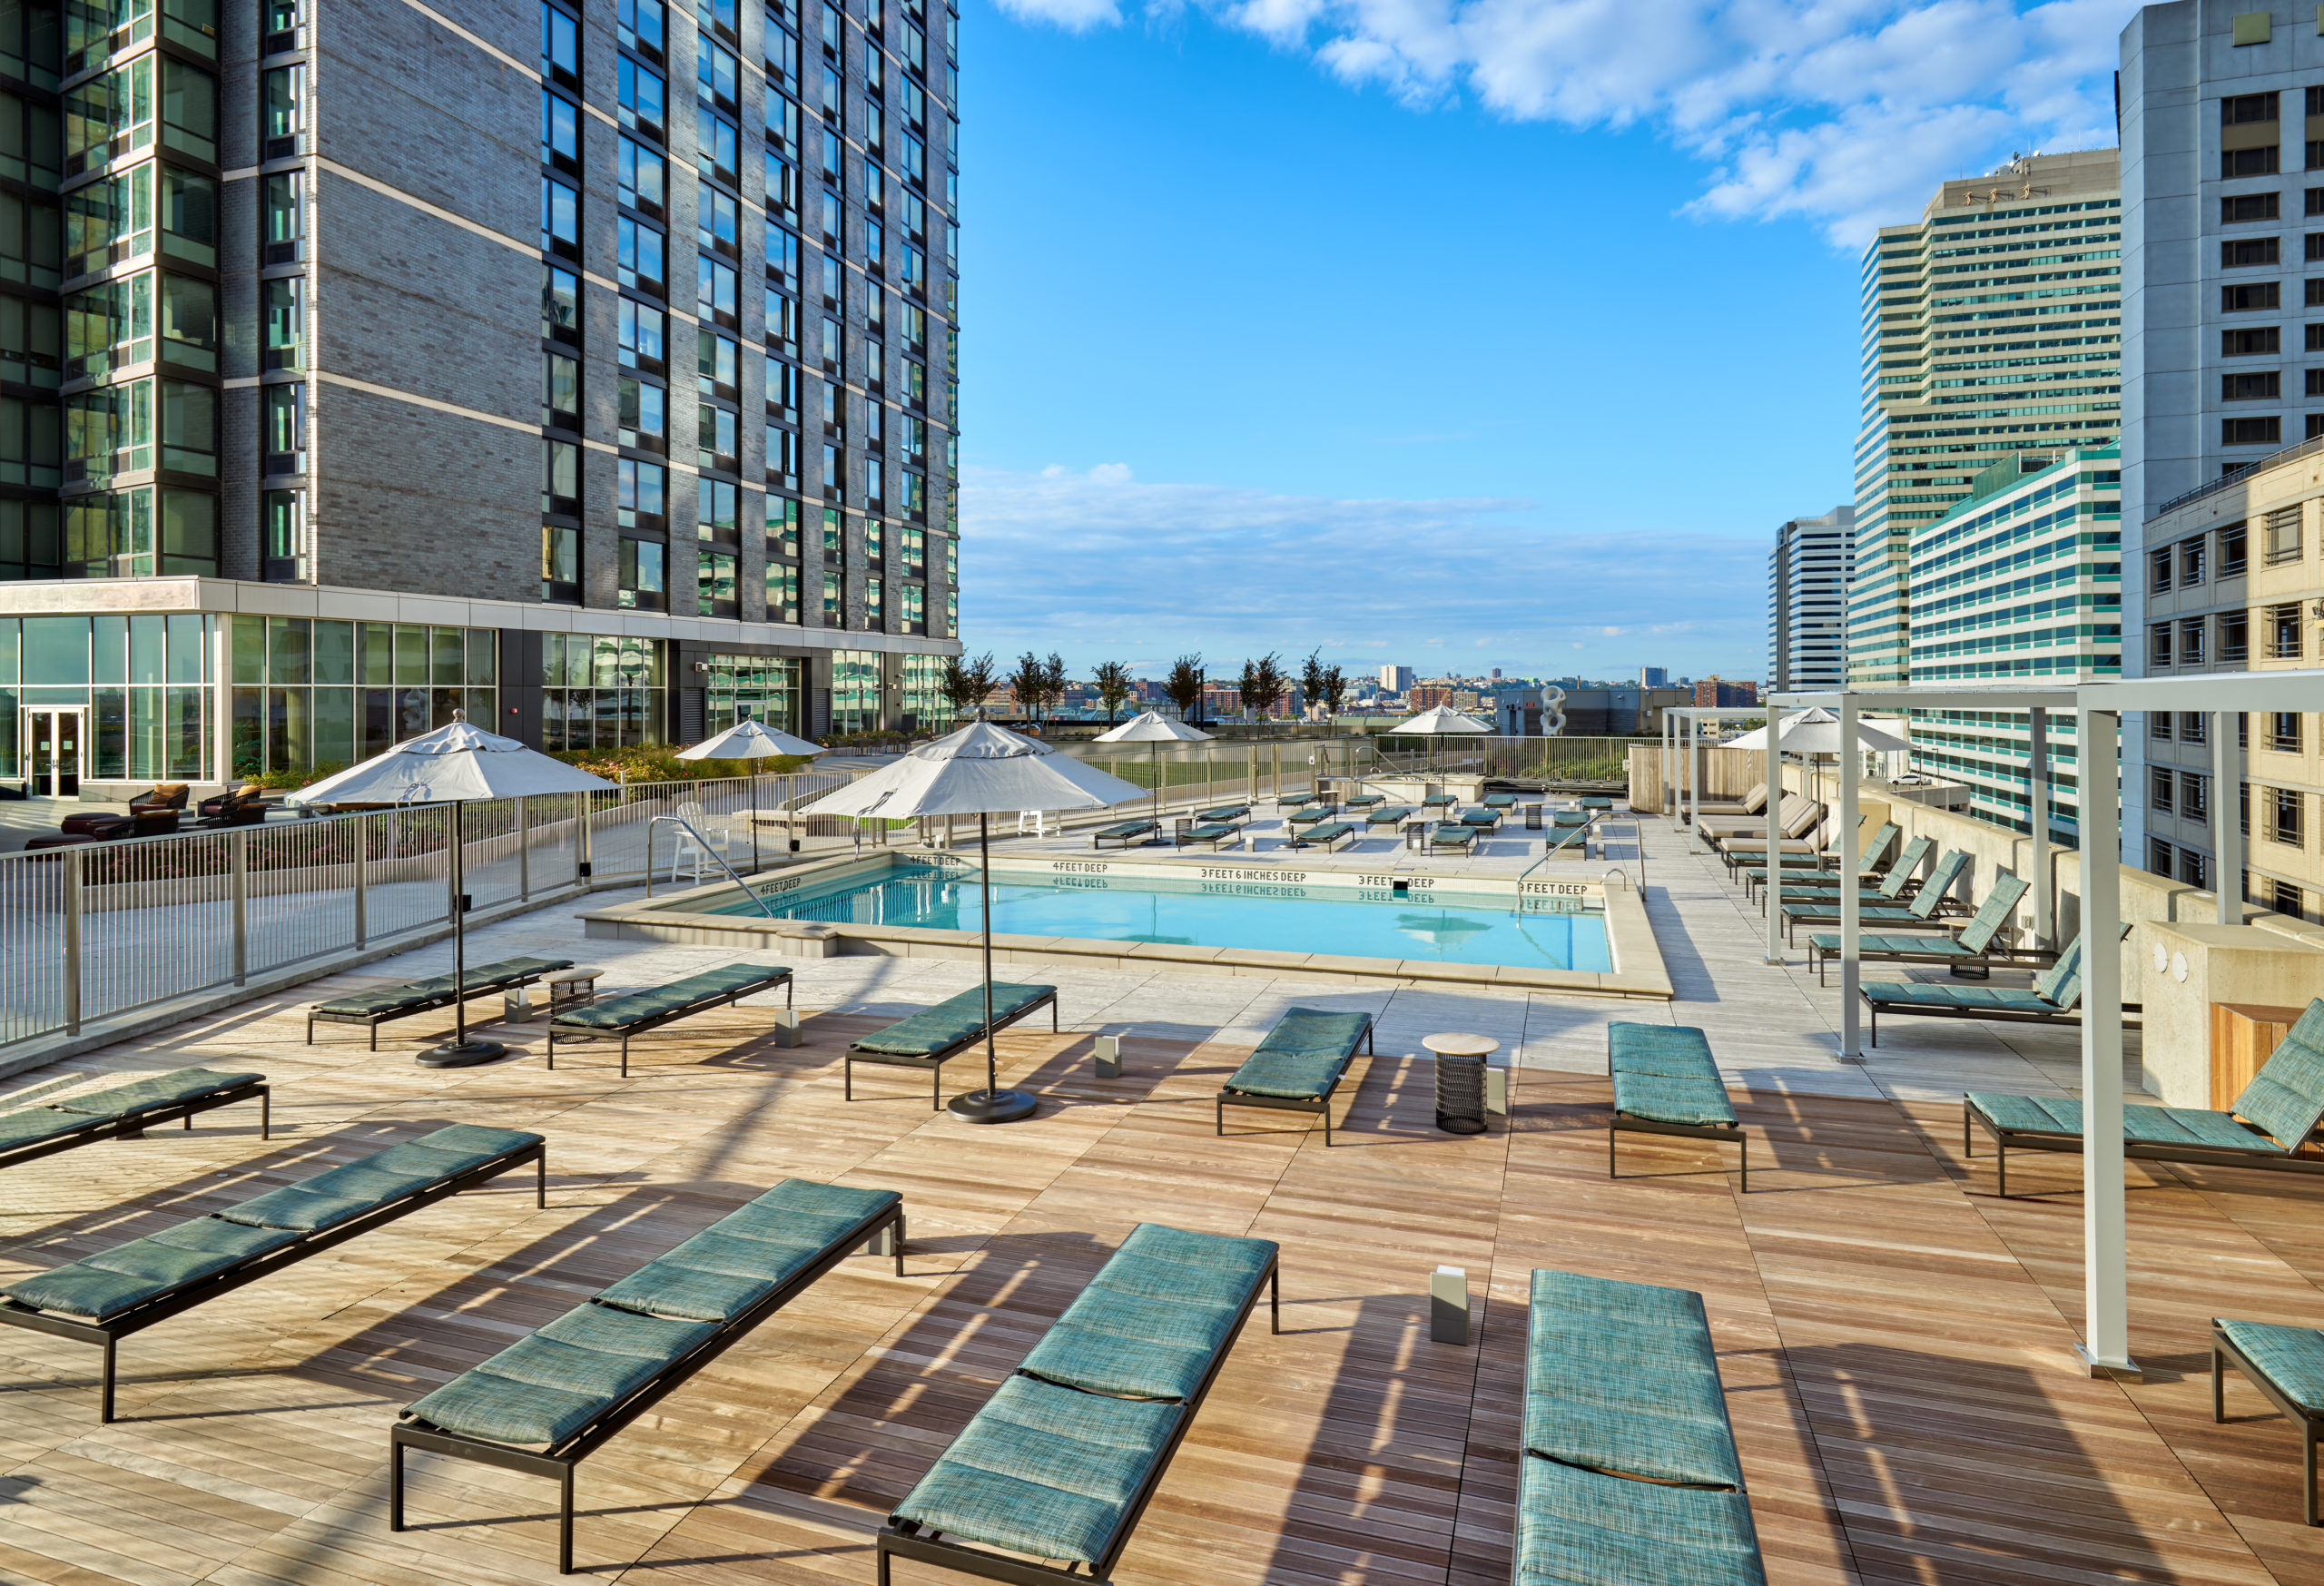 vyv south roof deck pool